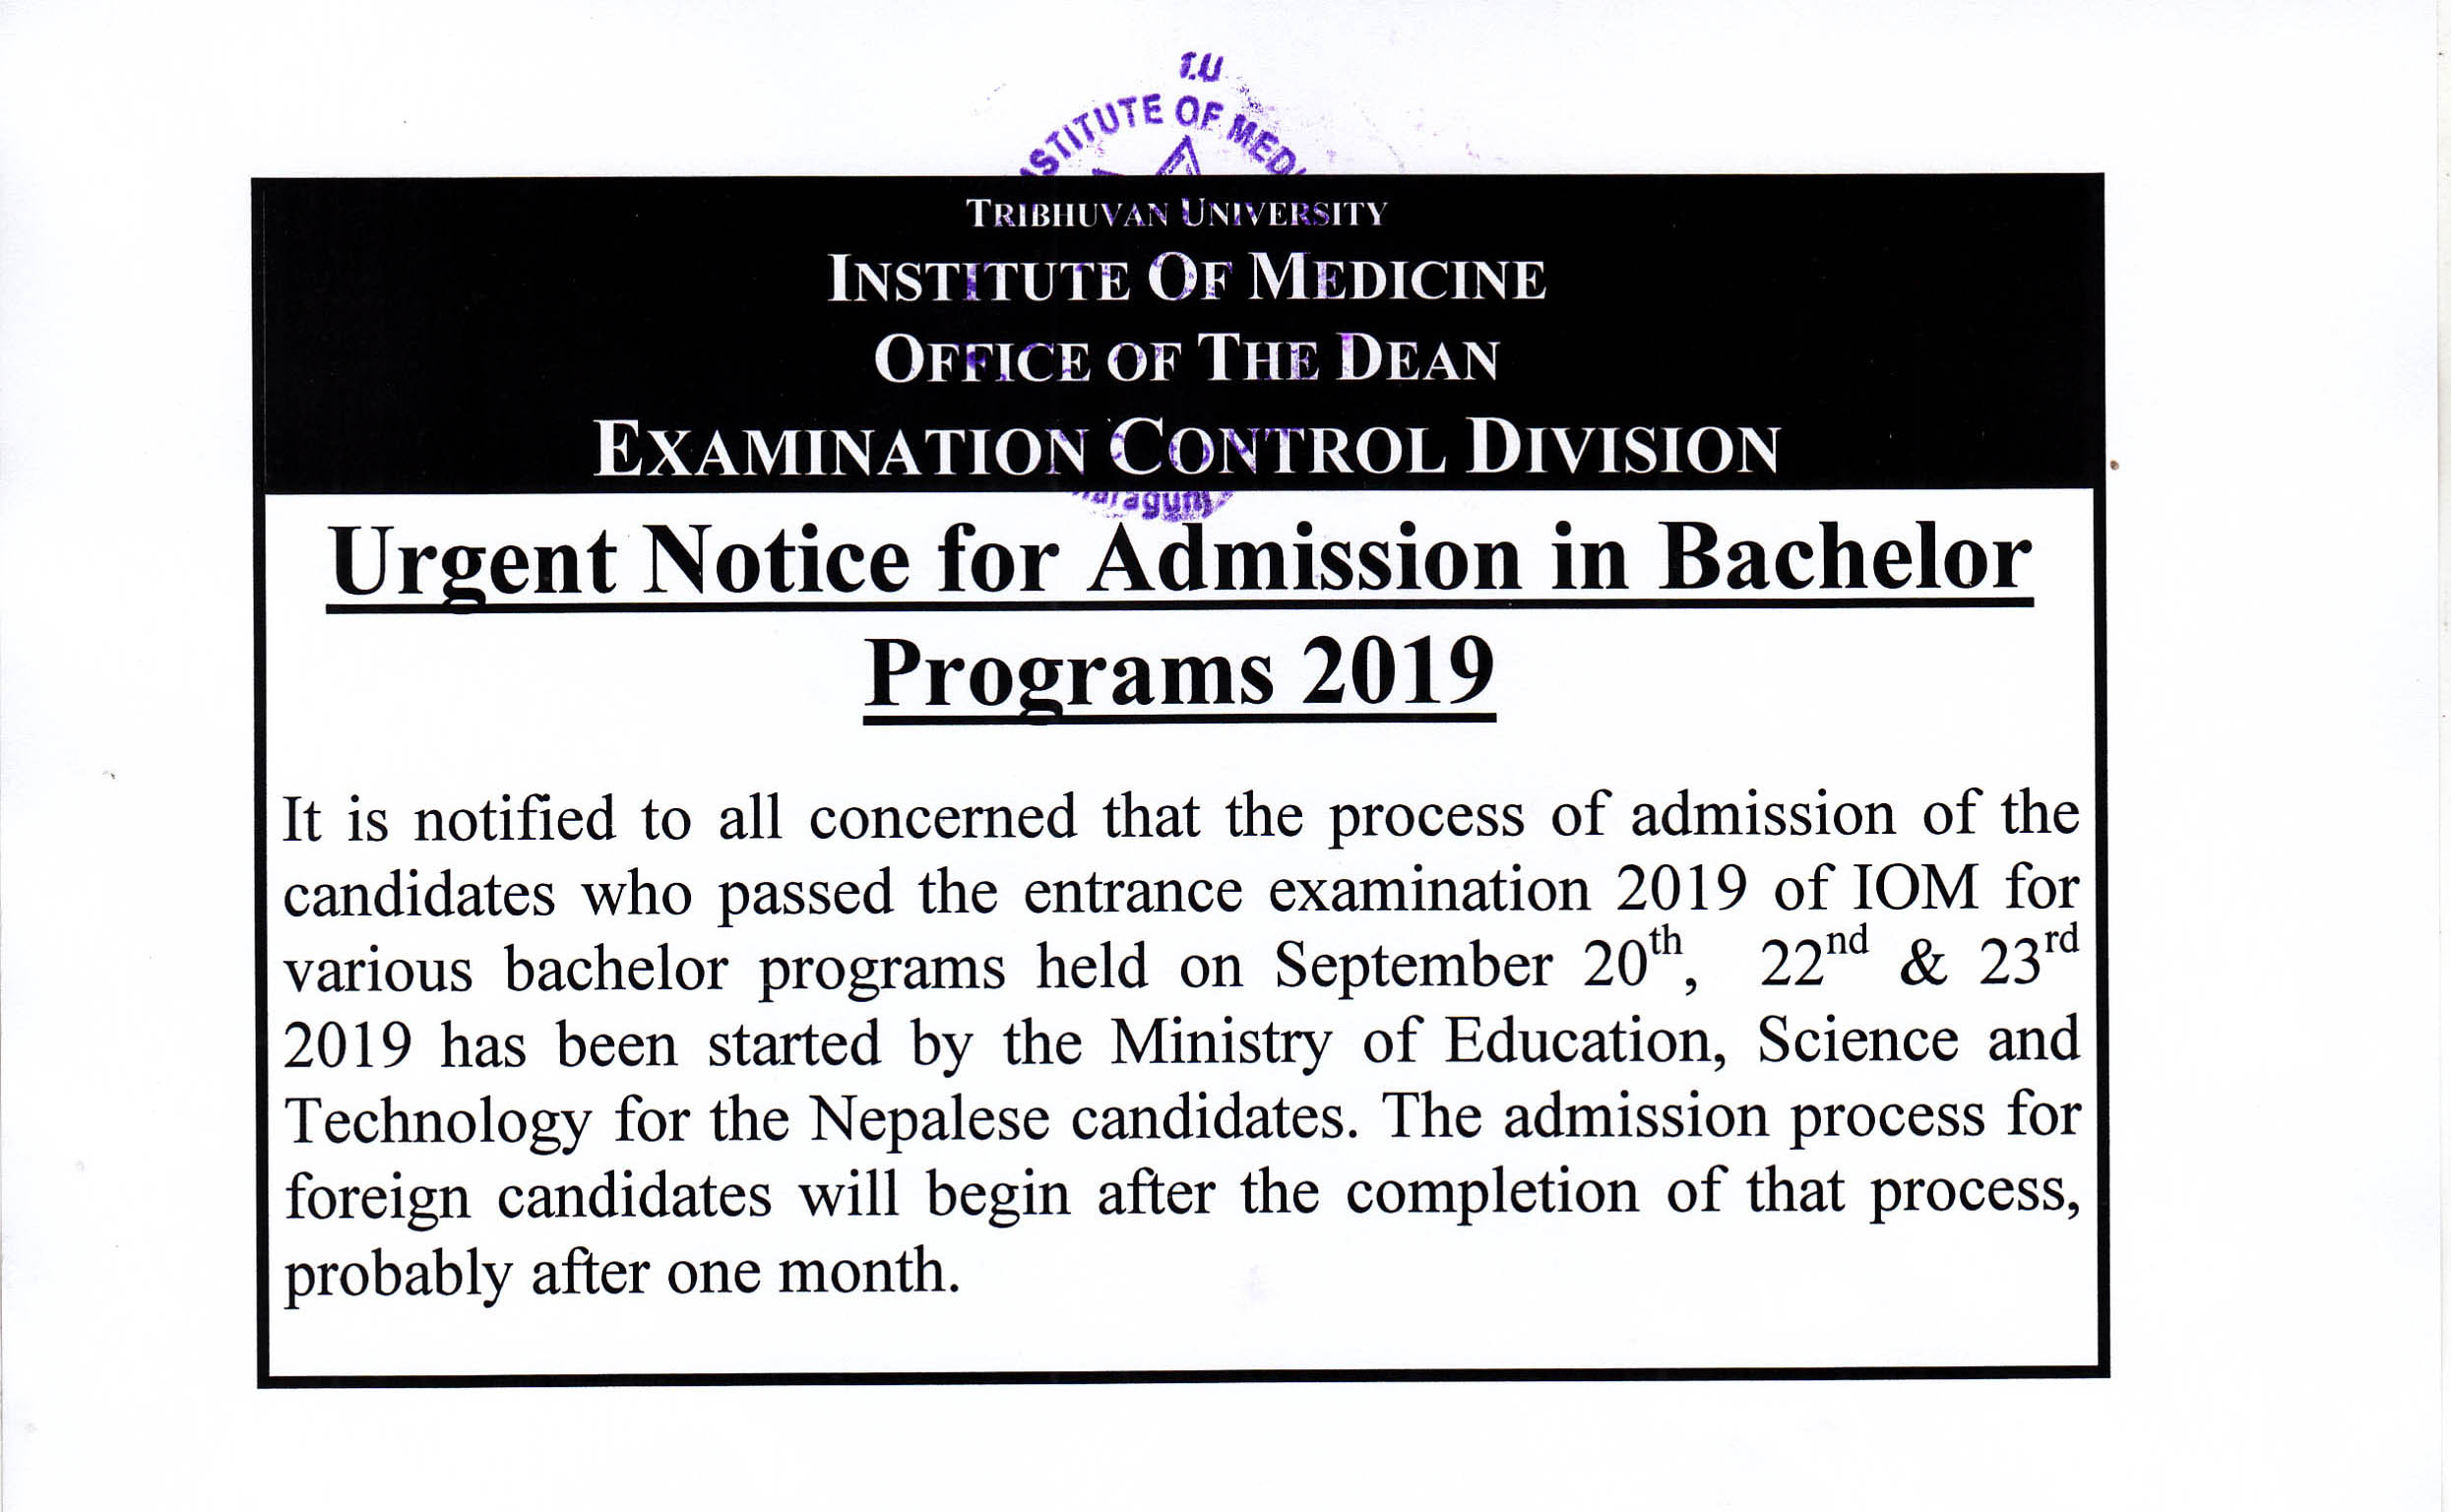 Urgent Notice for Admission in Bachelor Programs 2019